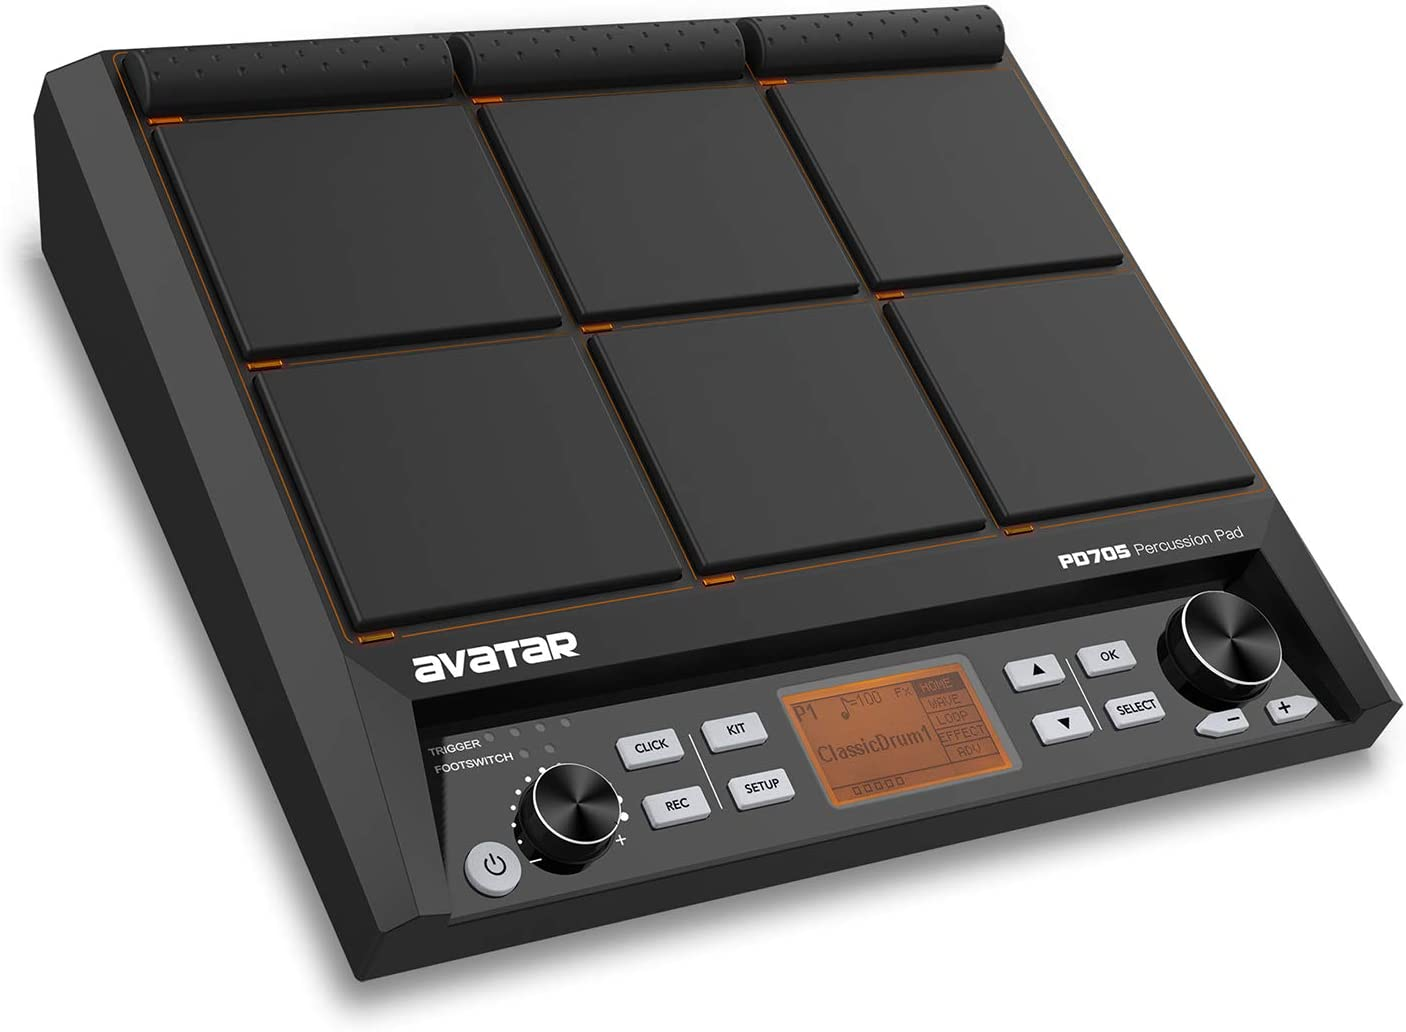 HXW Avatar PD705 Electronic Drum Pad